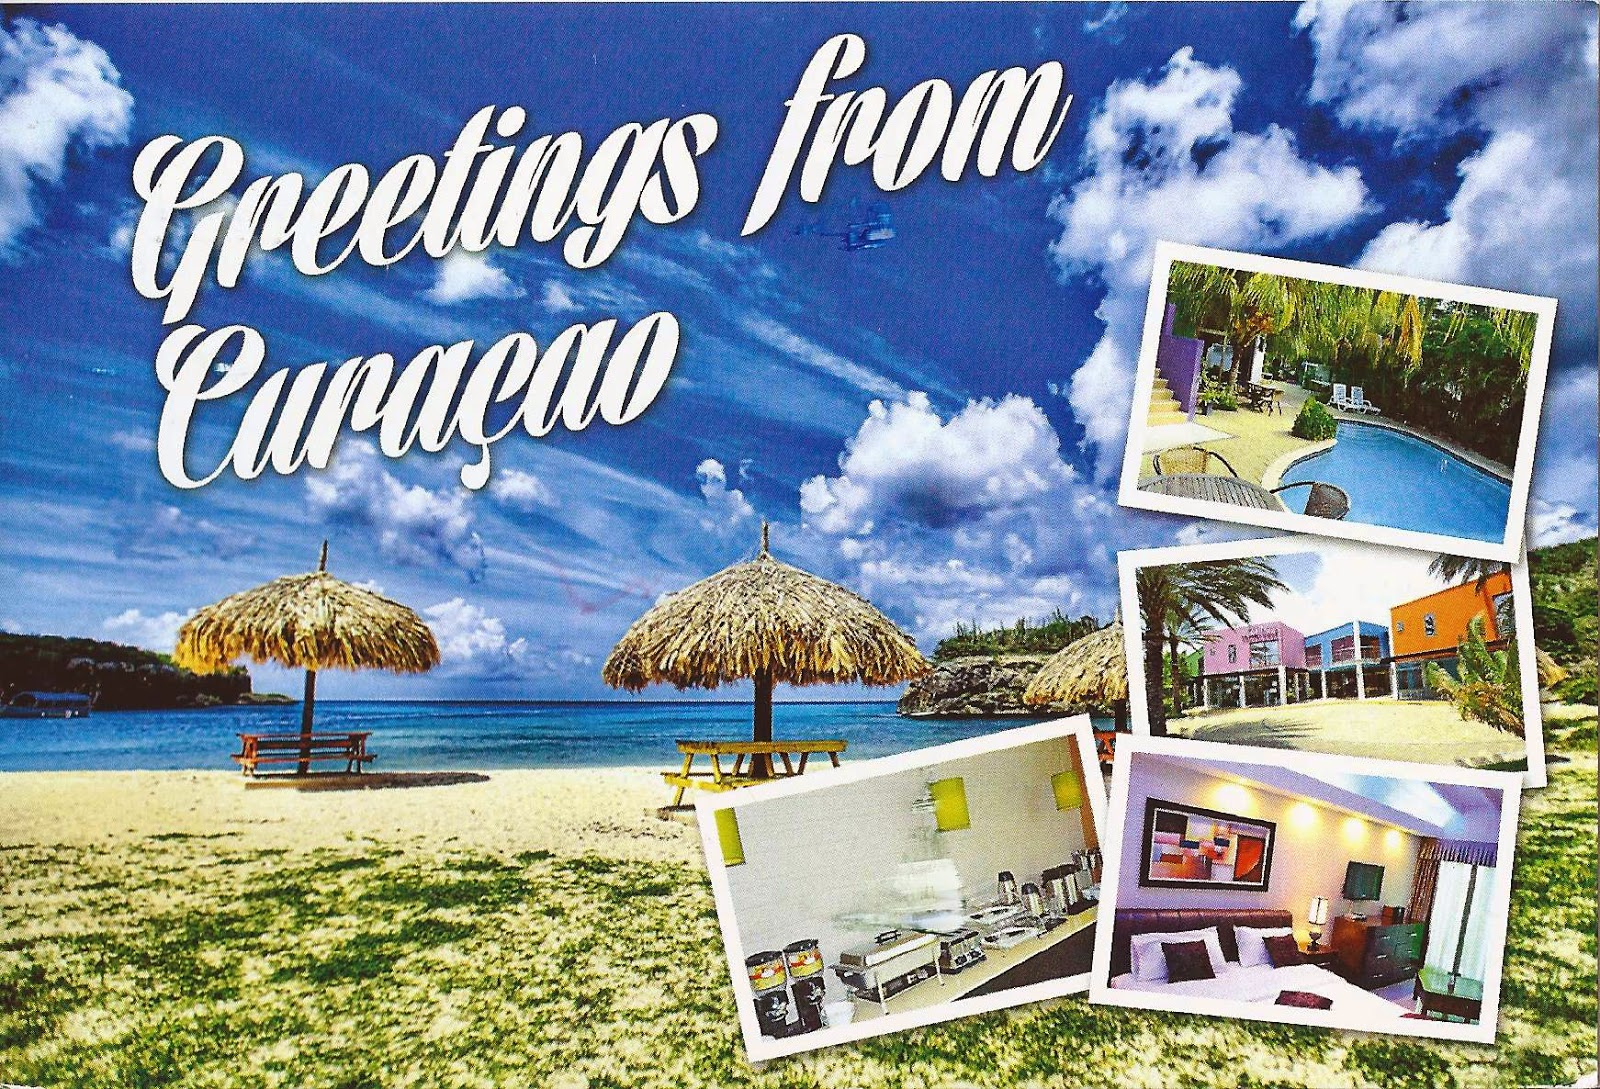 A Journey Of Postcards Greetings From Curacao A Postcard From The